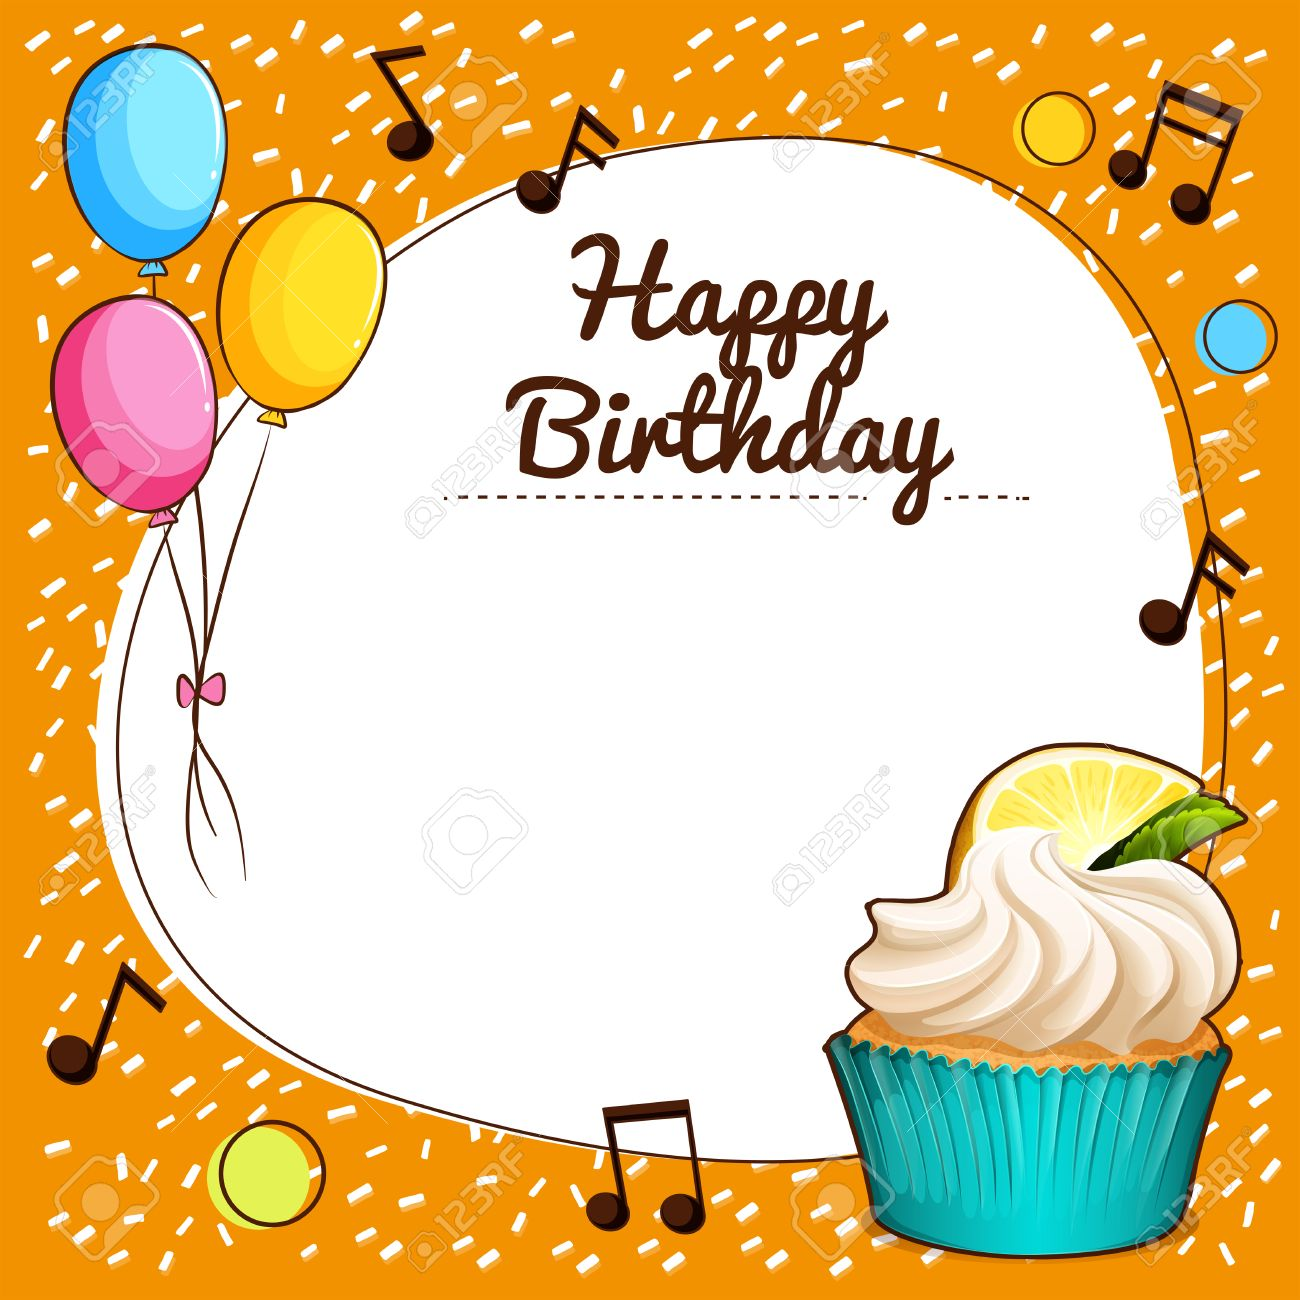 birthday theme Border Design With Happy Birthday Theme Illustration Royalty Free  birthday theme